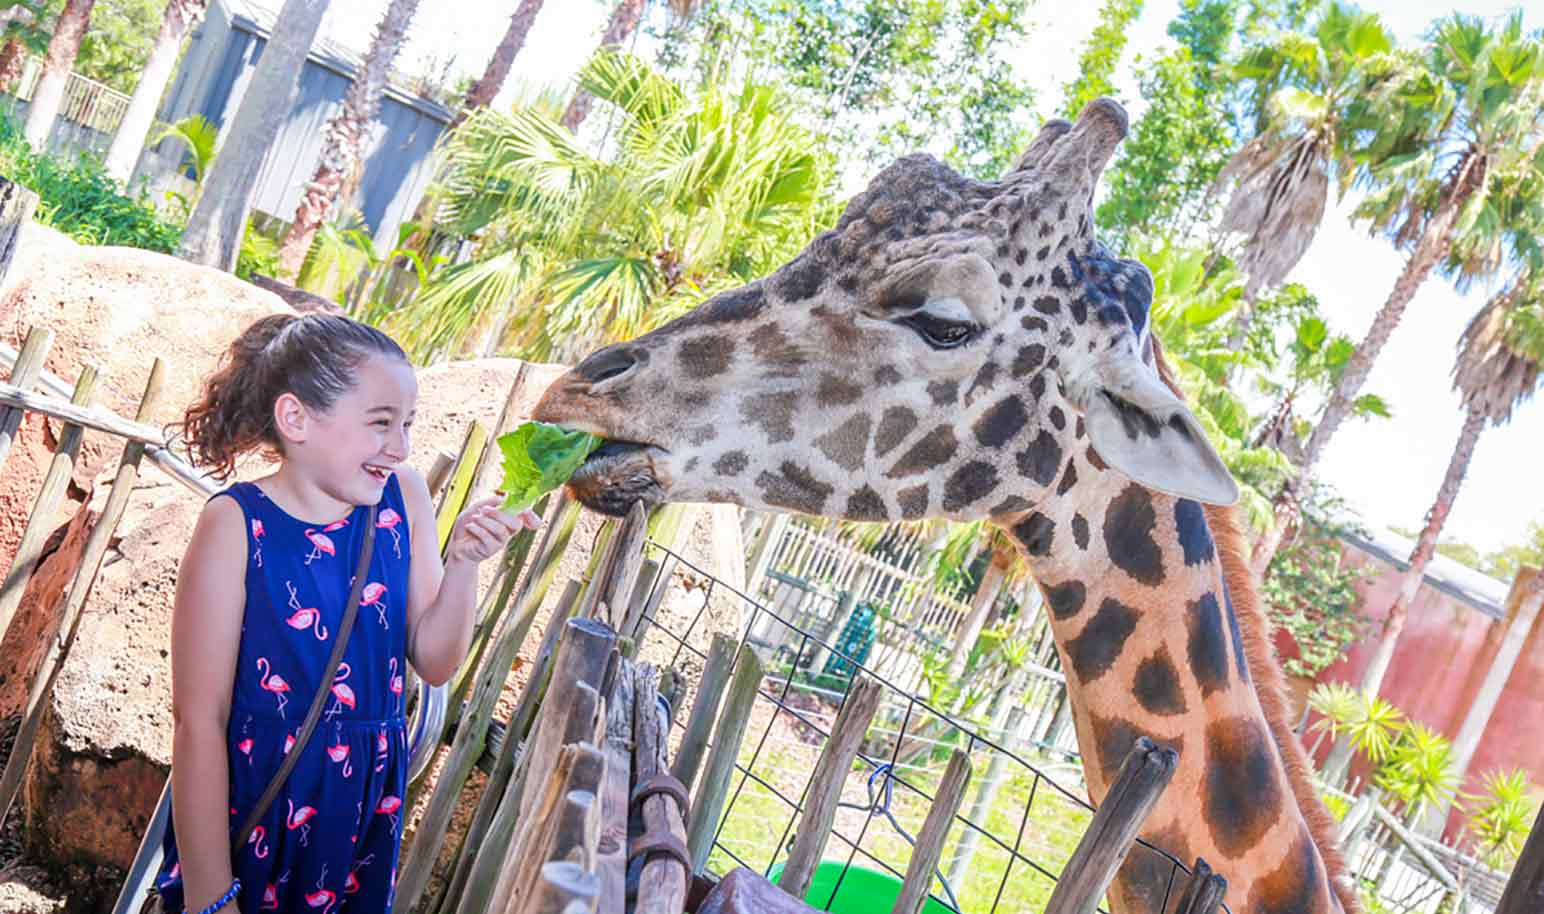 A girl feeds a leaf of lettuce to a giraffe at ZooTampa